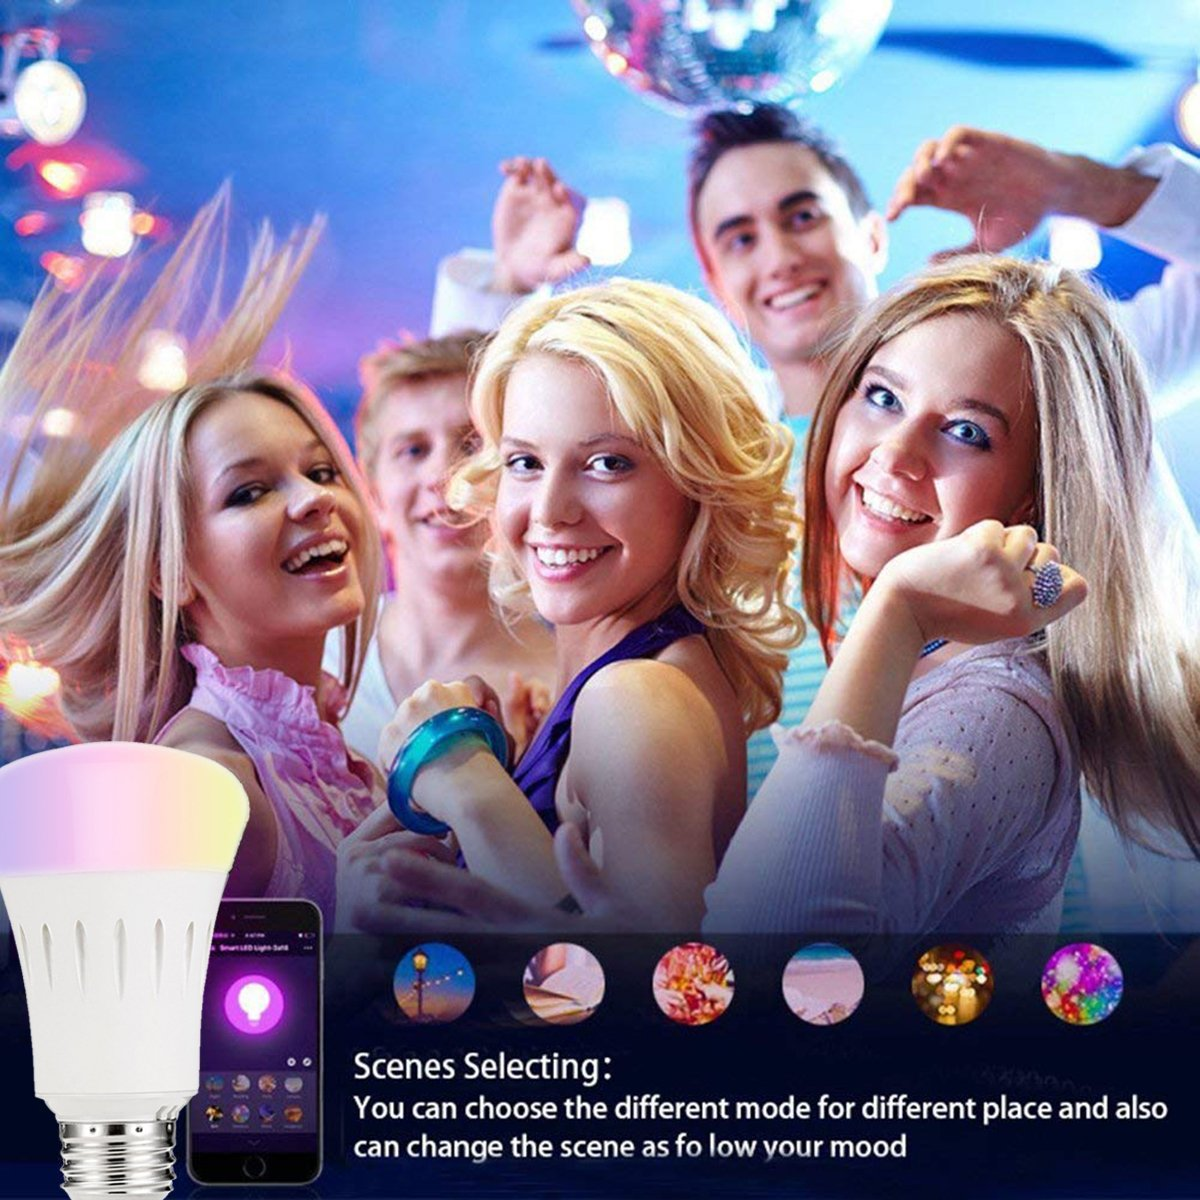 2Pack Smart Bulb Compatible with Alexa,Google Home,Wifi Smart Light Bulb,Dimmable,Timer Switch,Multicolored,No Hub Required,Remote Control,Scene Mode,Wake Up Lights Function by Buycitky (Image #6)